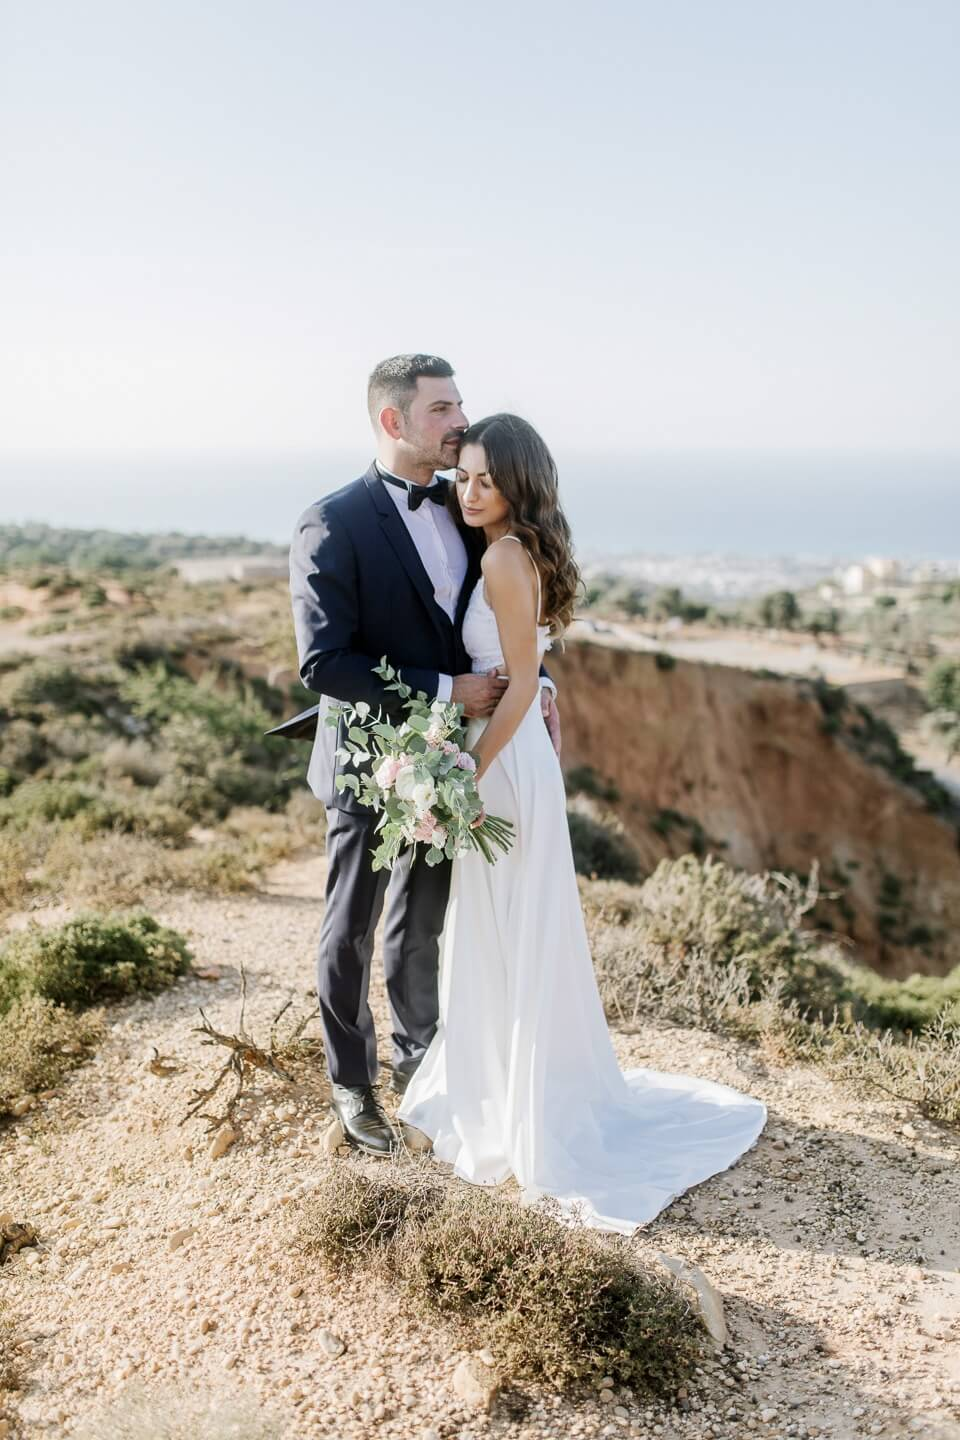 Irini Koronaki Professional Wedding Photographer Photography Crete Greece